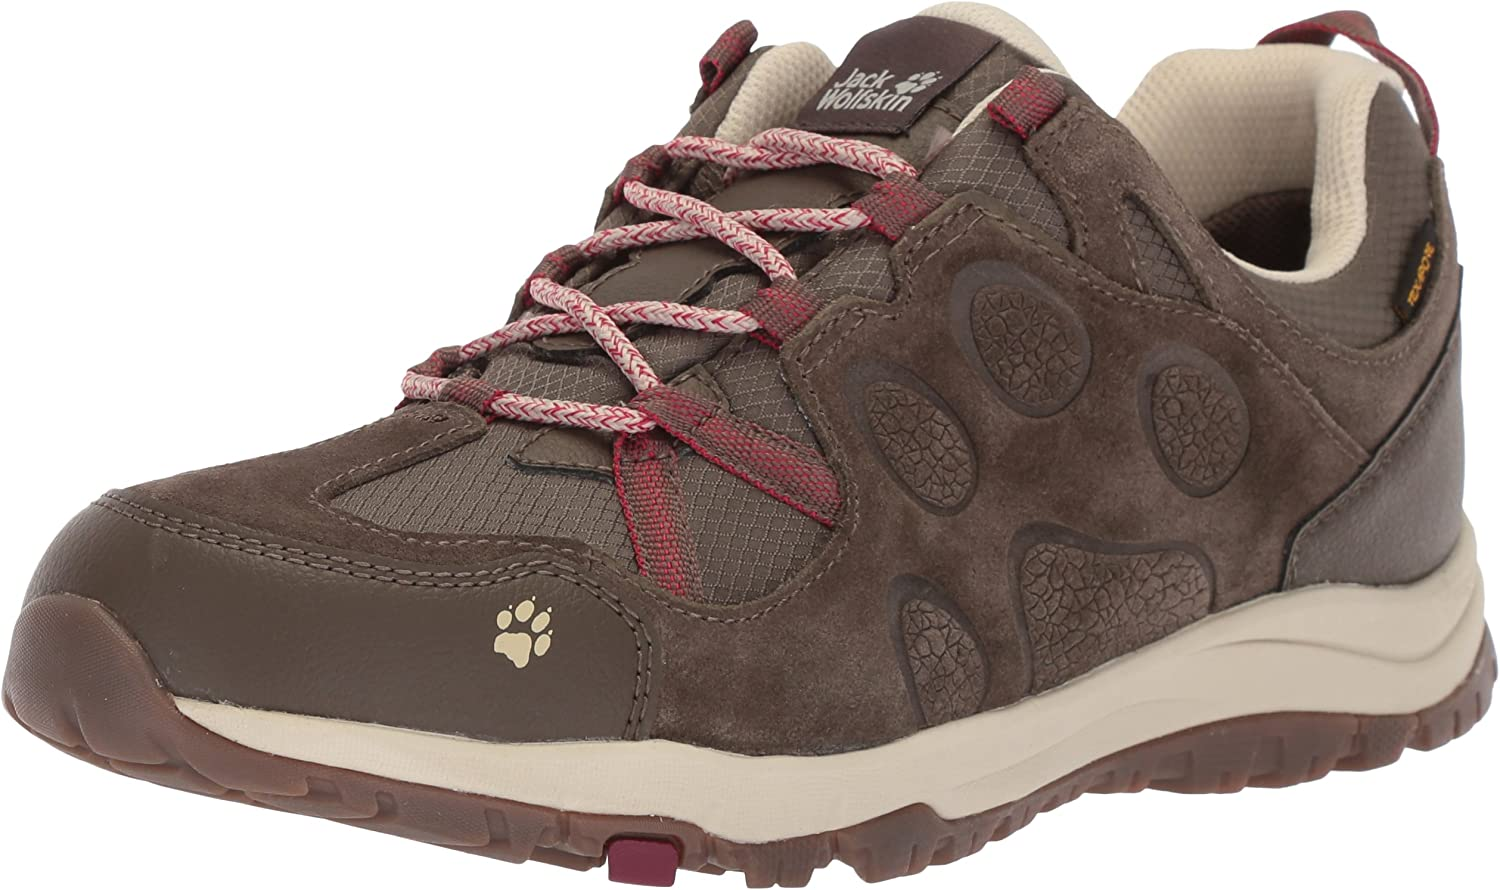 Jack Wolfskin Womens Rocksand Texapore Low W Hiking shoes